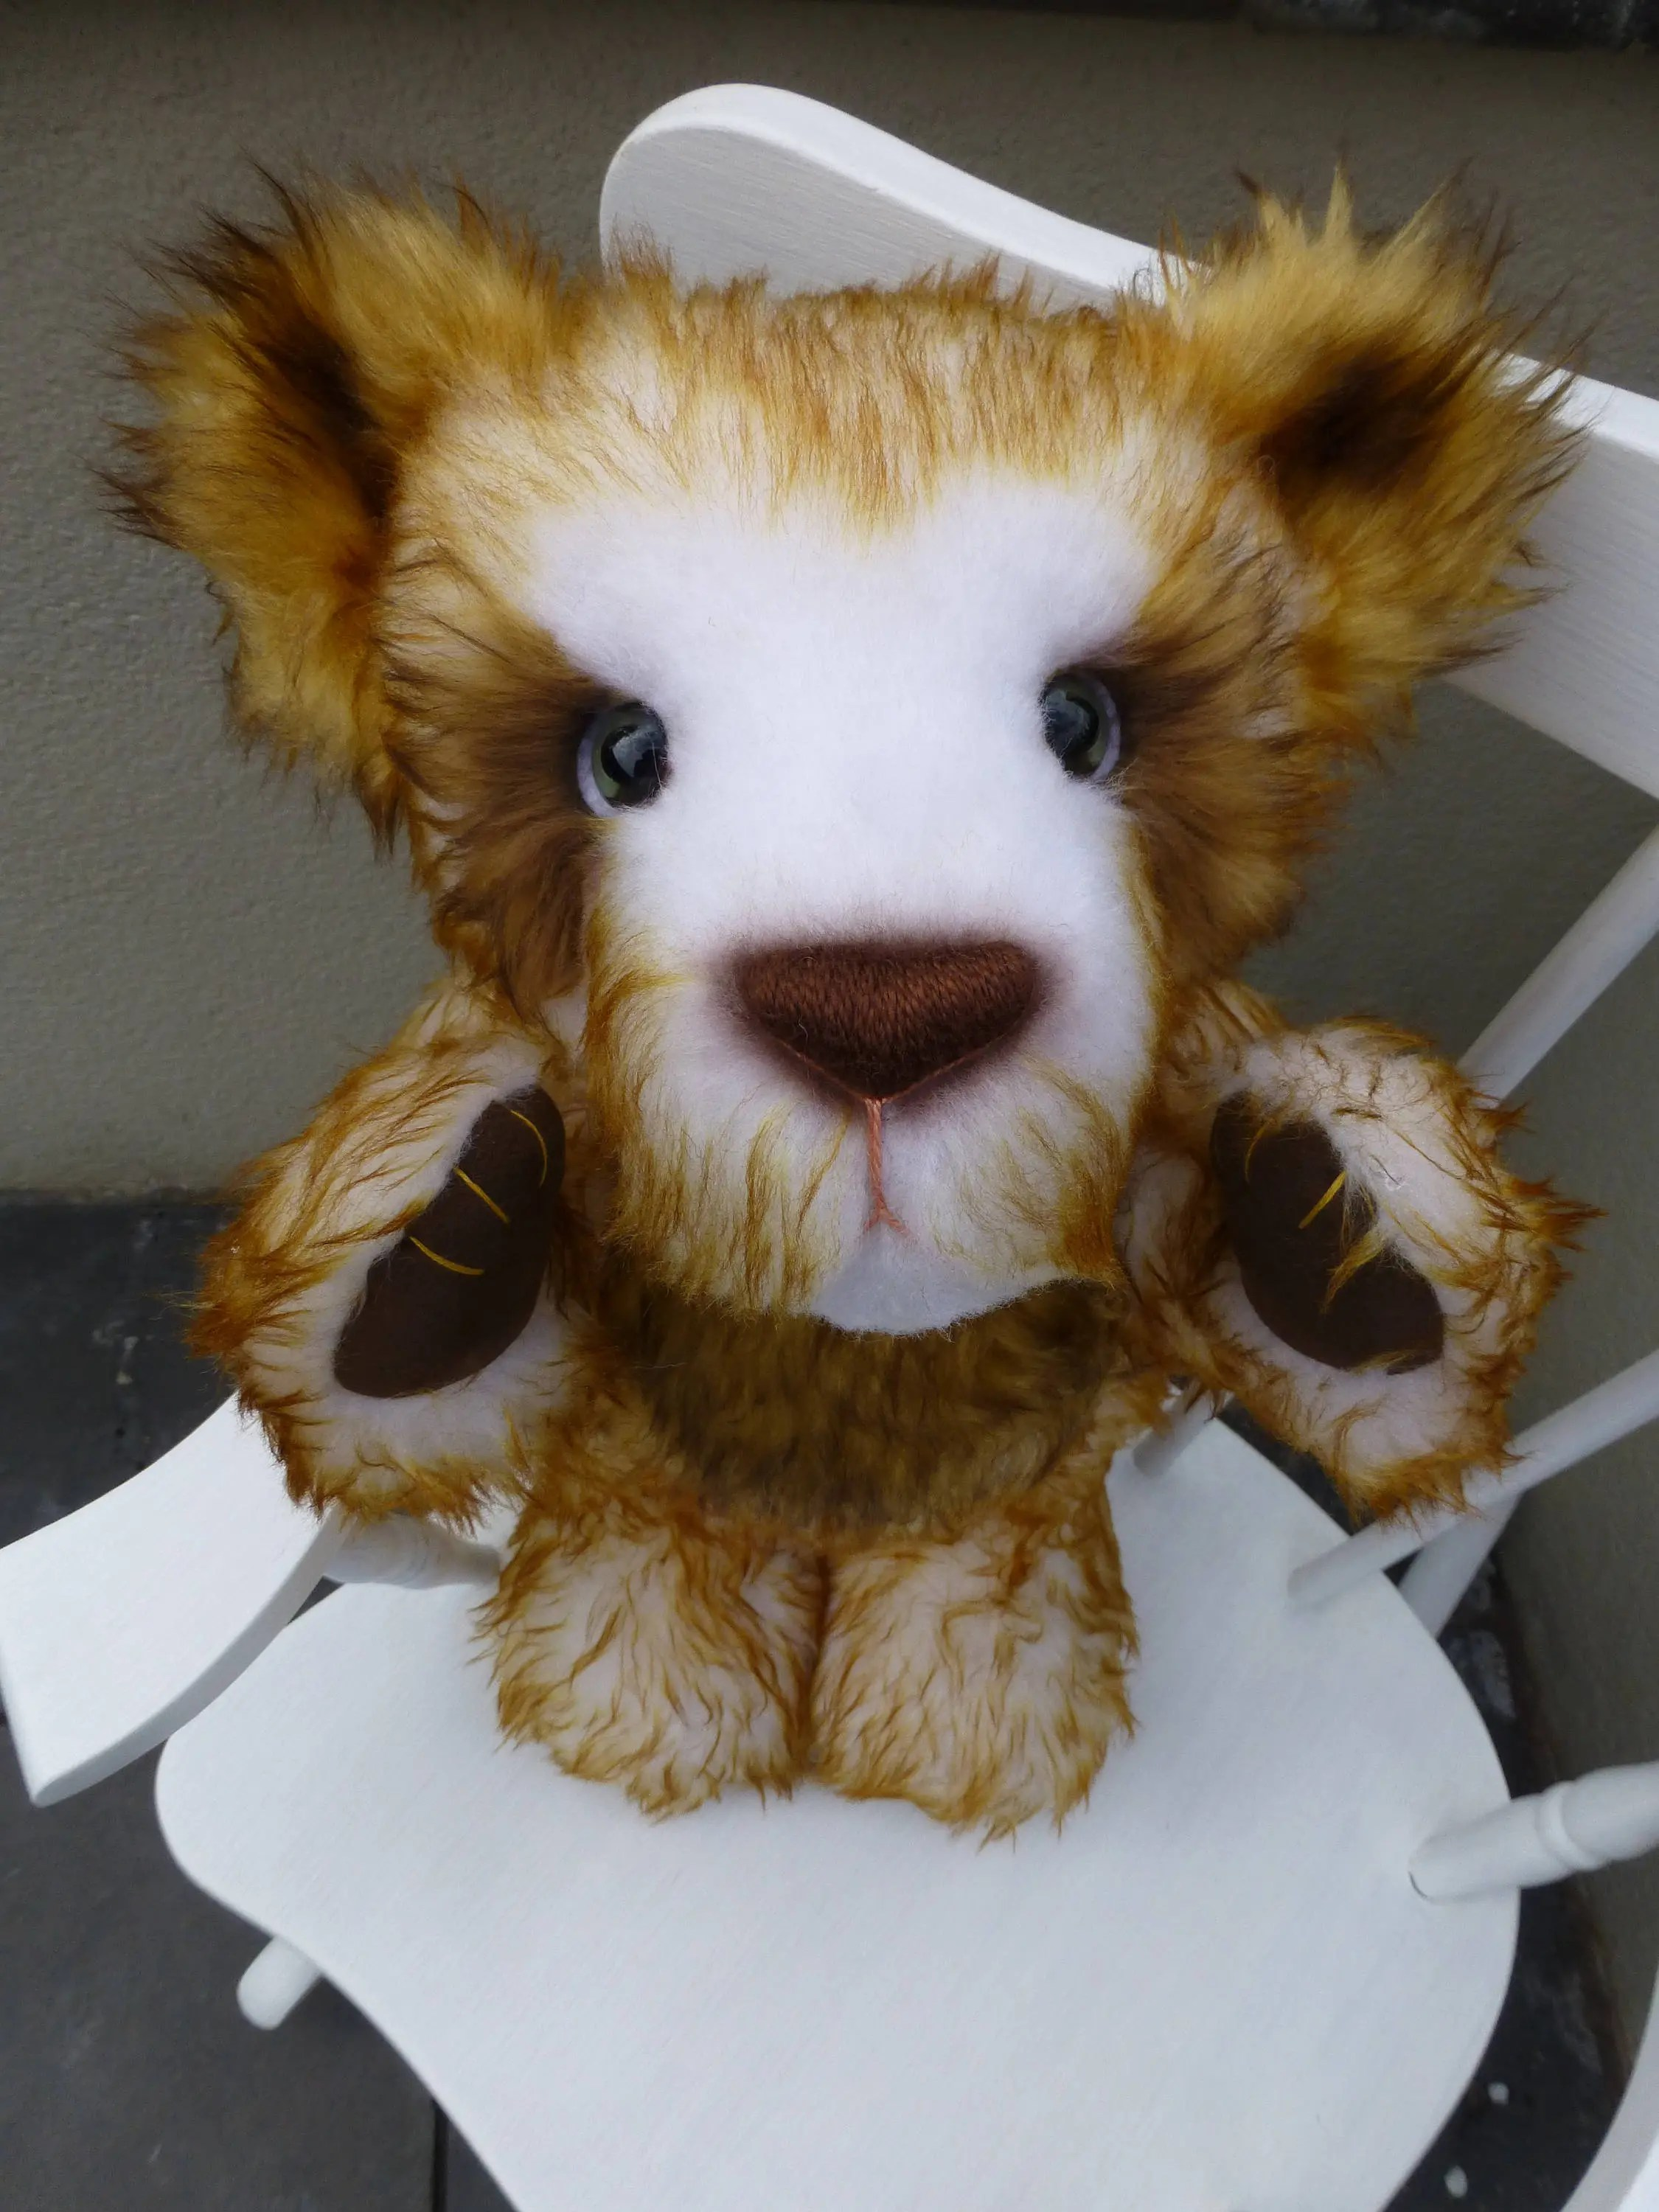 Australian Made Teddy Bears Handmade 15 Fully Jointed Teddy Bear Made In Australia Etsy